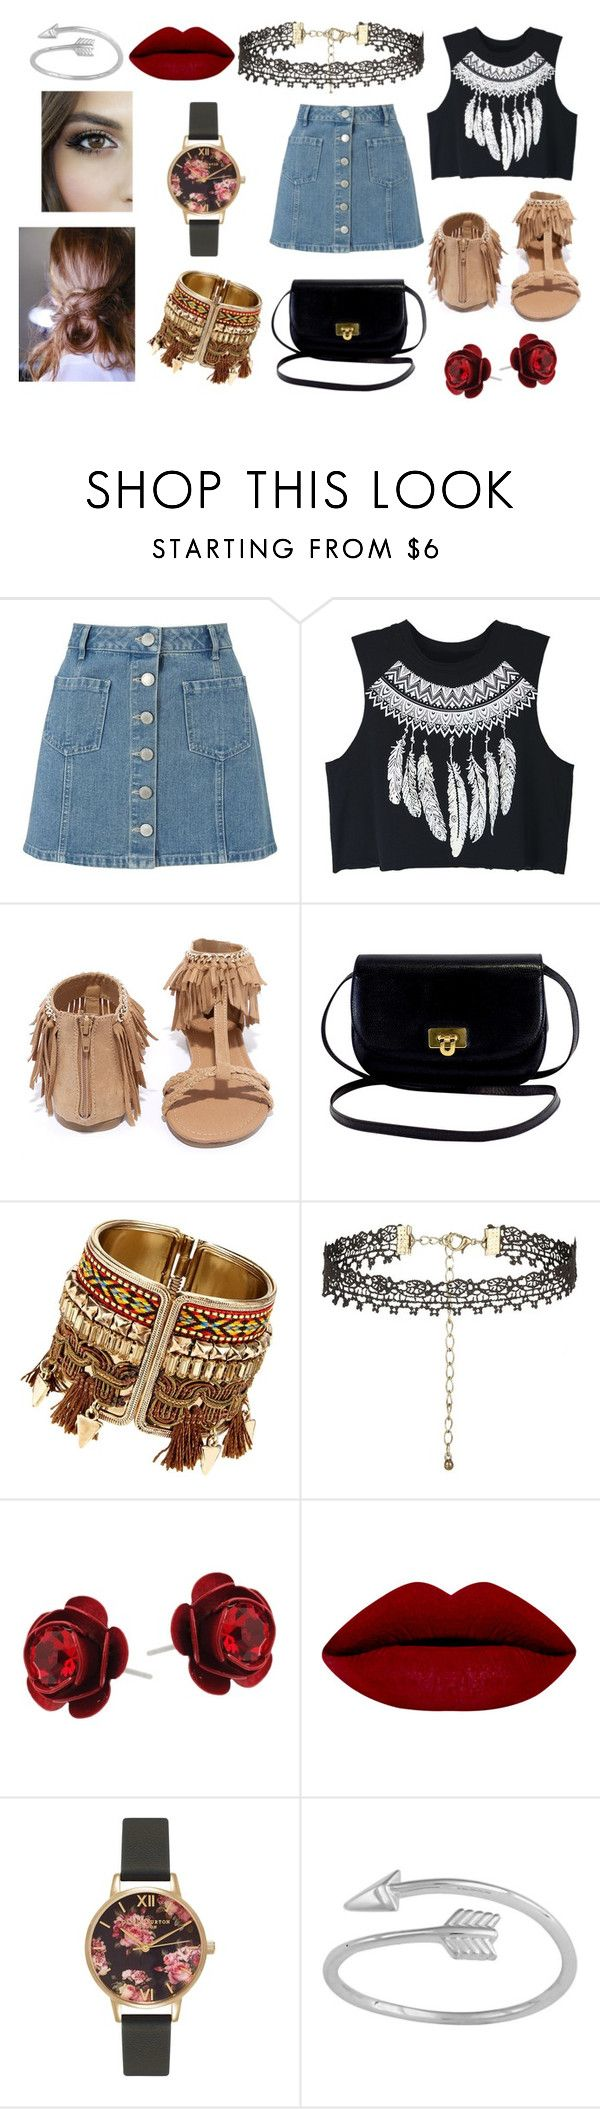 """Untitled #67"" by zahlia-tibbs on Polyvore featuring Miss Selfridge, WithChic, Qupid, Michal Negrin, Olivia Burton and Midsummer Star"